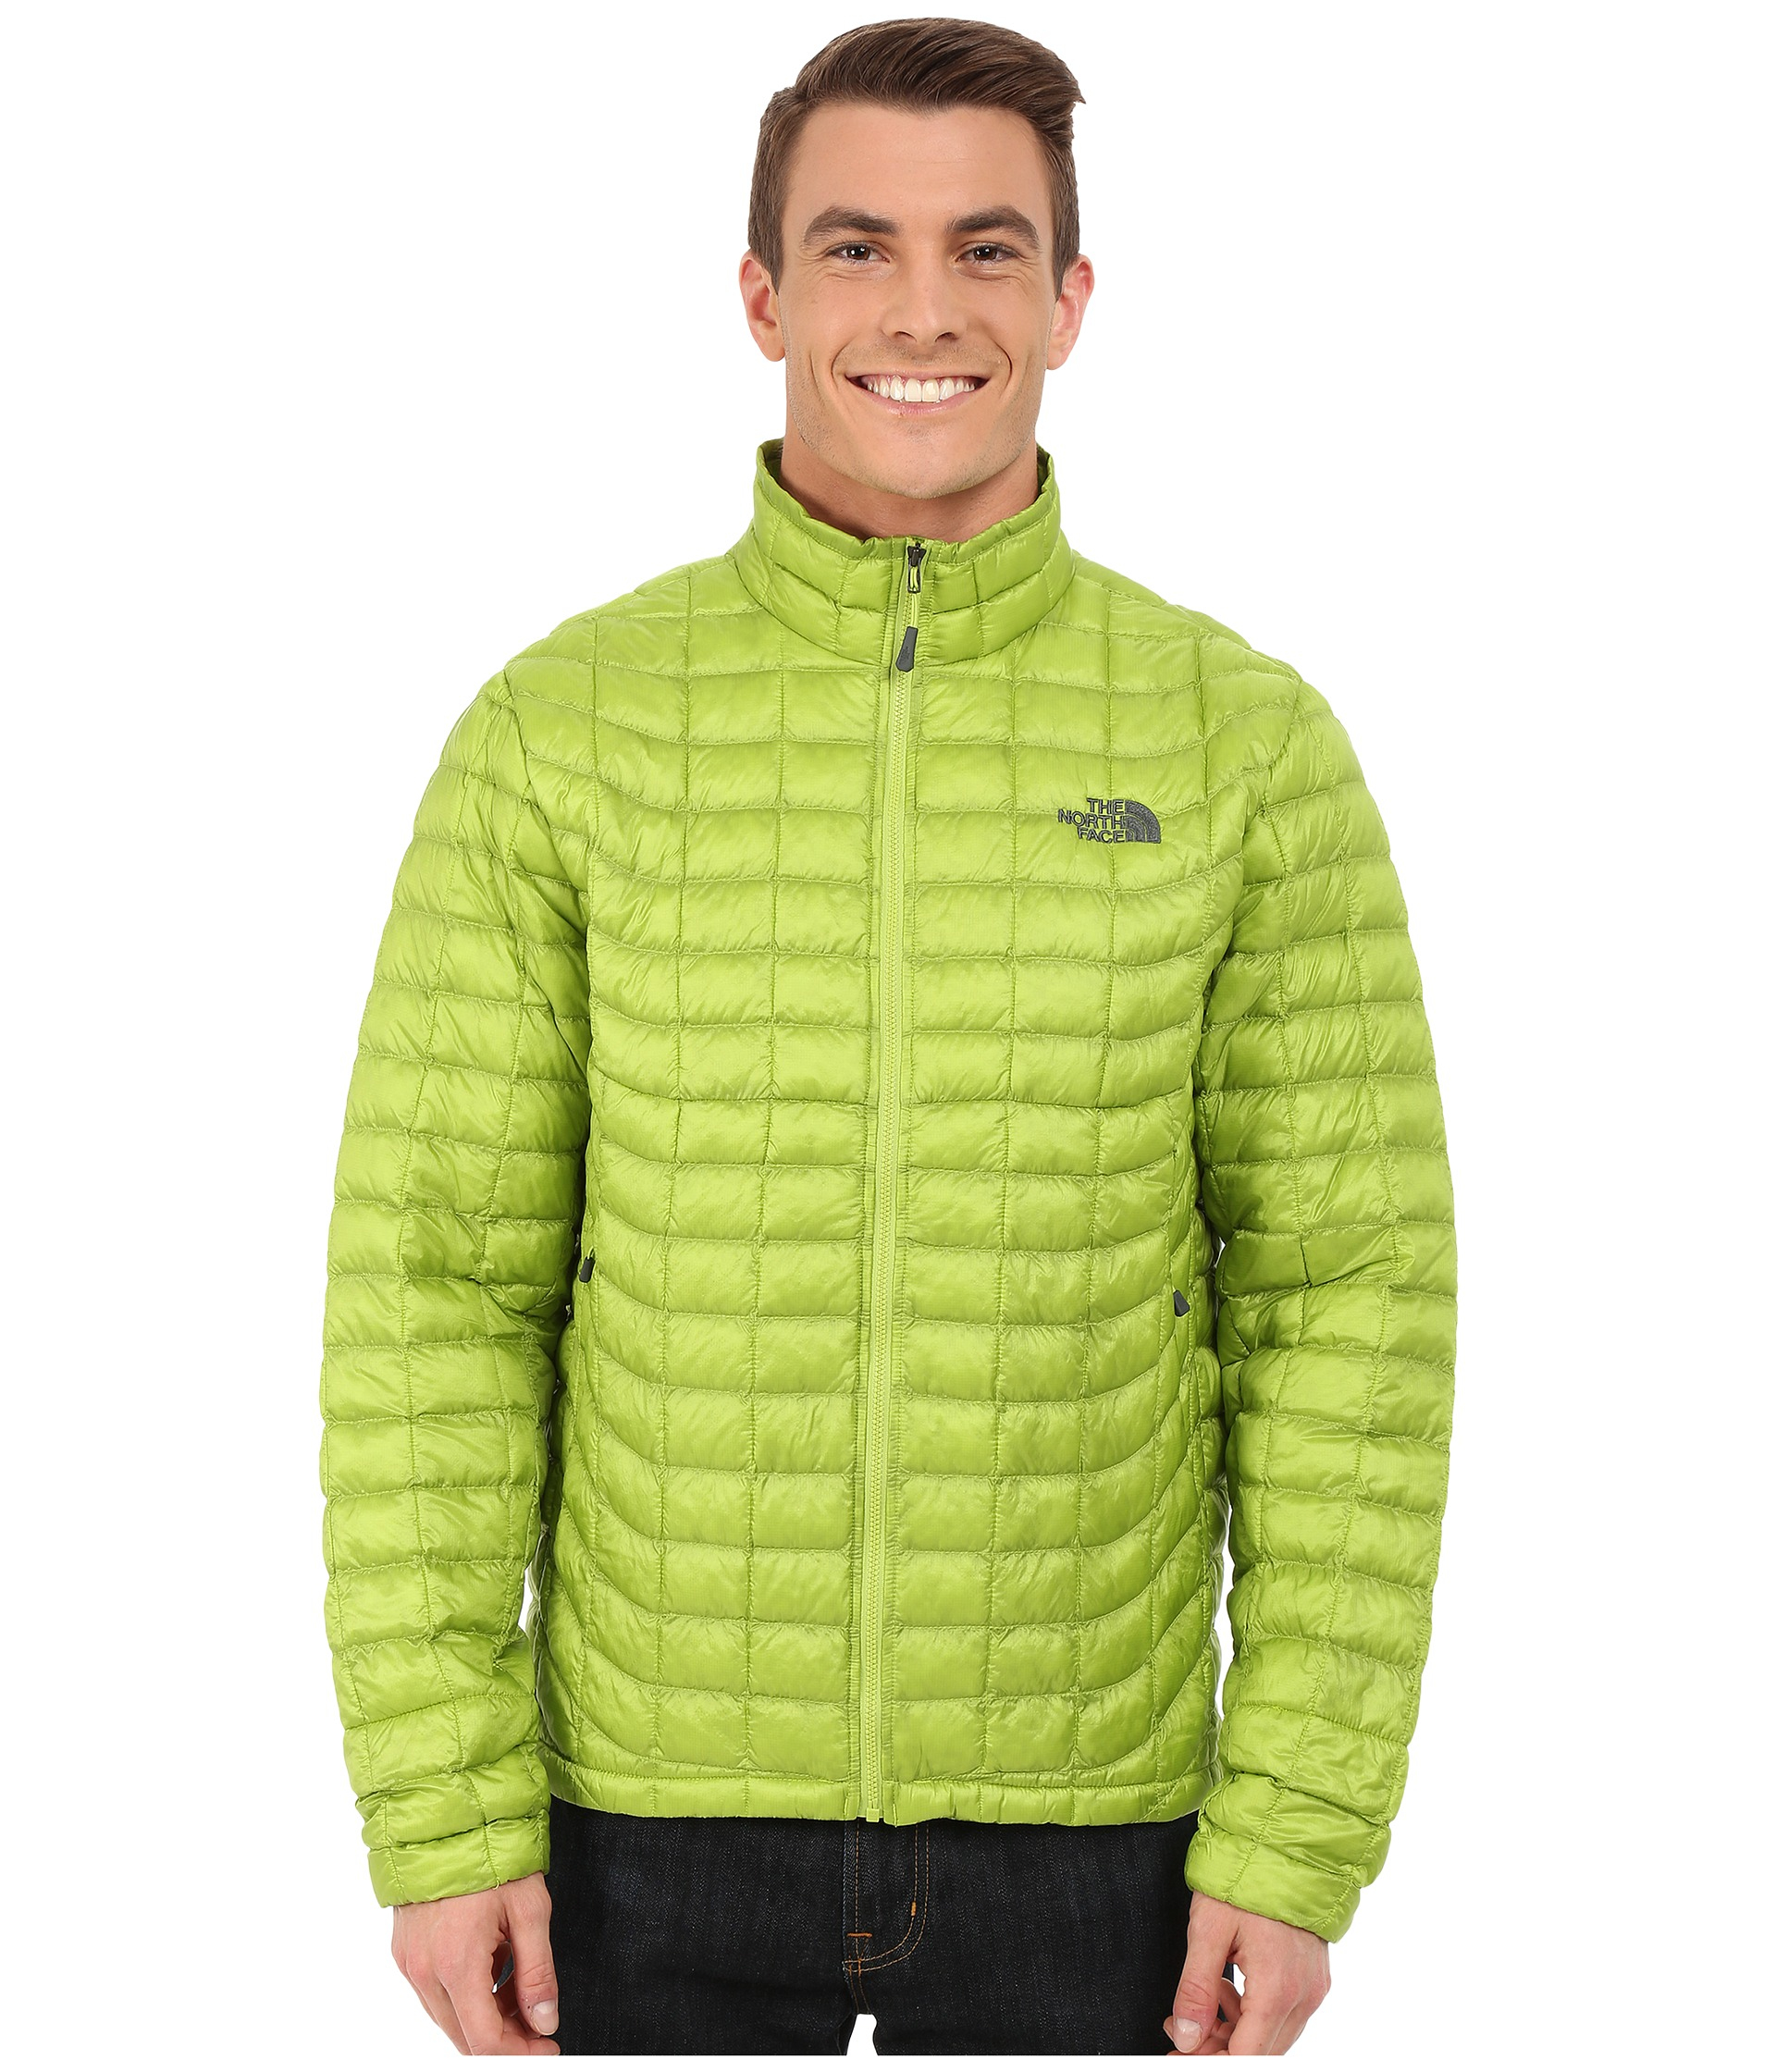 Lyst - The North Face Thermoball™ Full Zip Jacket in Green for Men beb8bd43bc3a